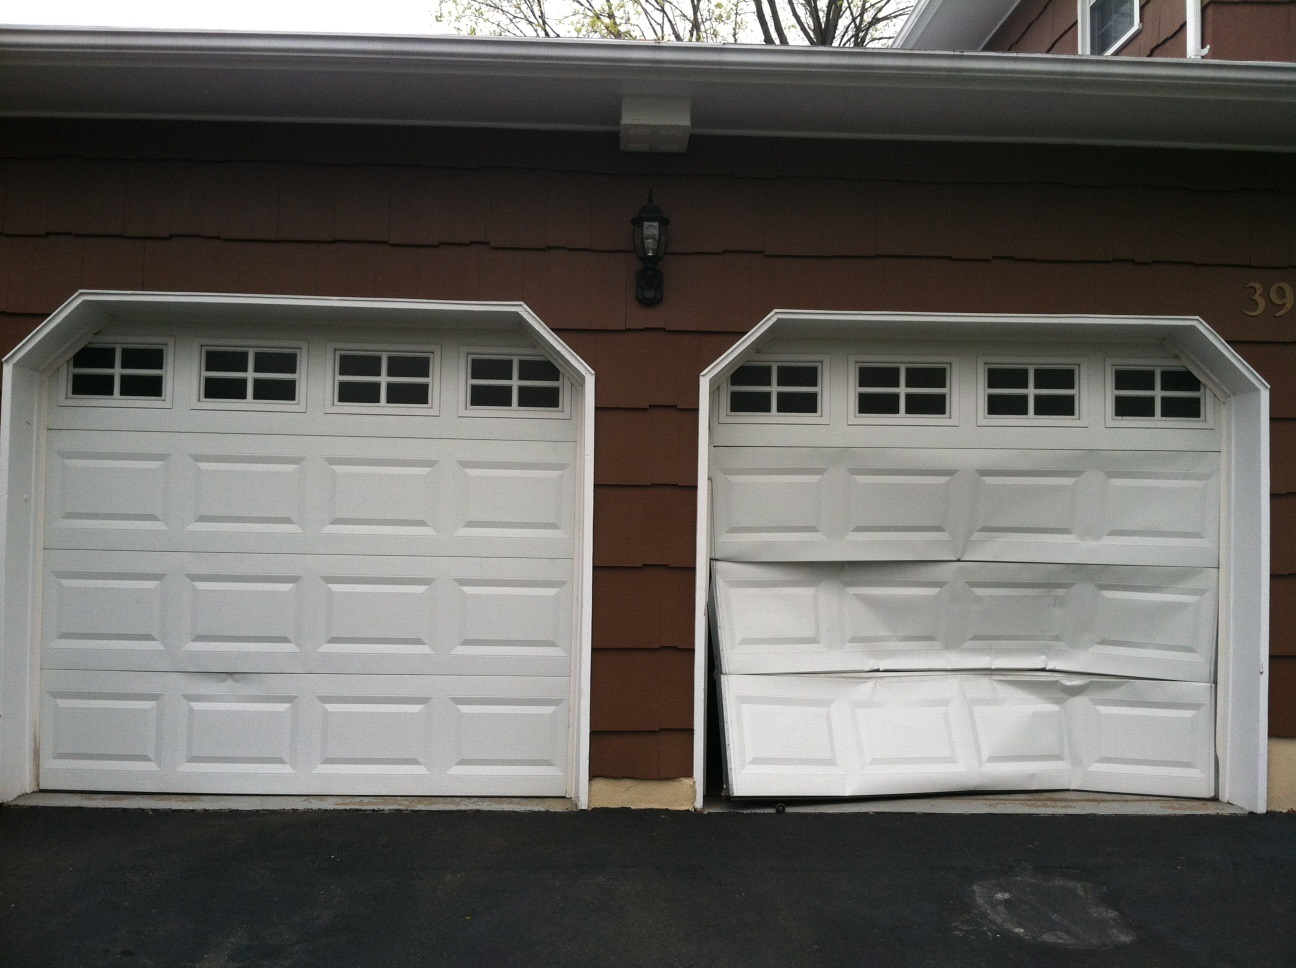 Delicieux Look Online For Good Promotions So At Least You Can Save Money When Getting  Your Garage Door Repaired. Some Parts Of The Garage Door You Can Fix  Yourself, ...